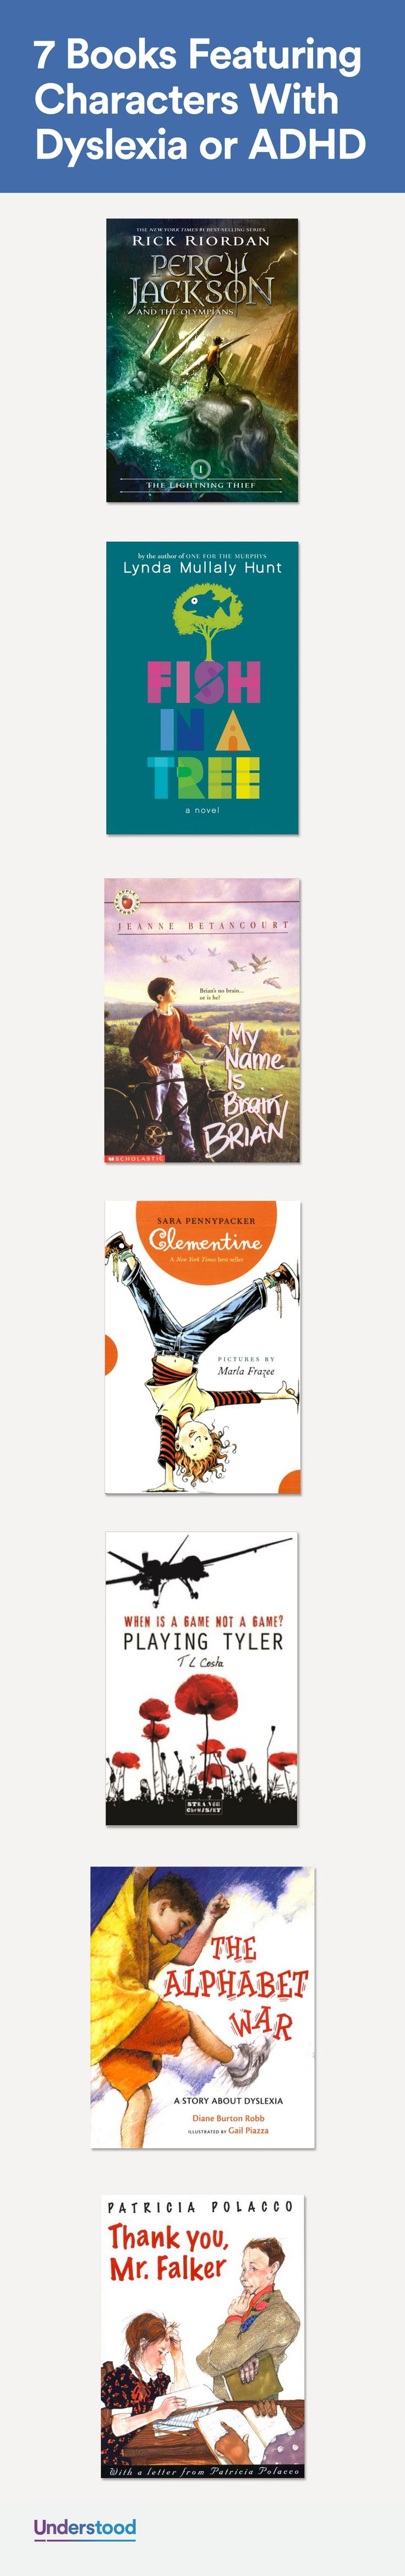 In Books, The Mostpelling Characters Often Remind Us Of Ourselves  These Great Reads